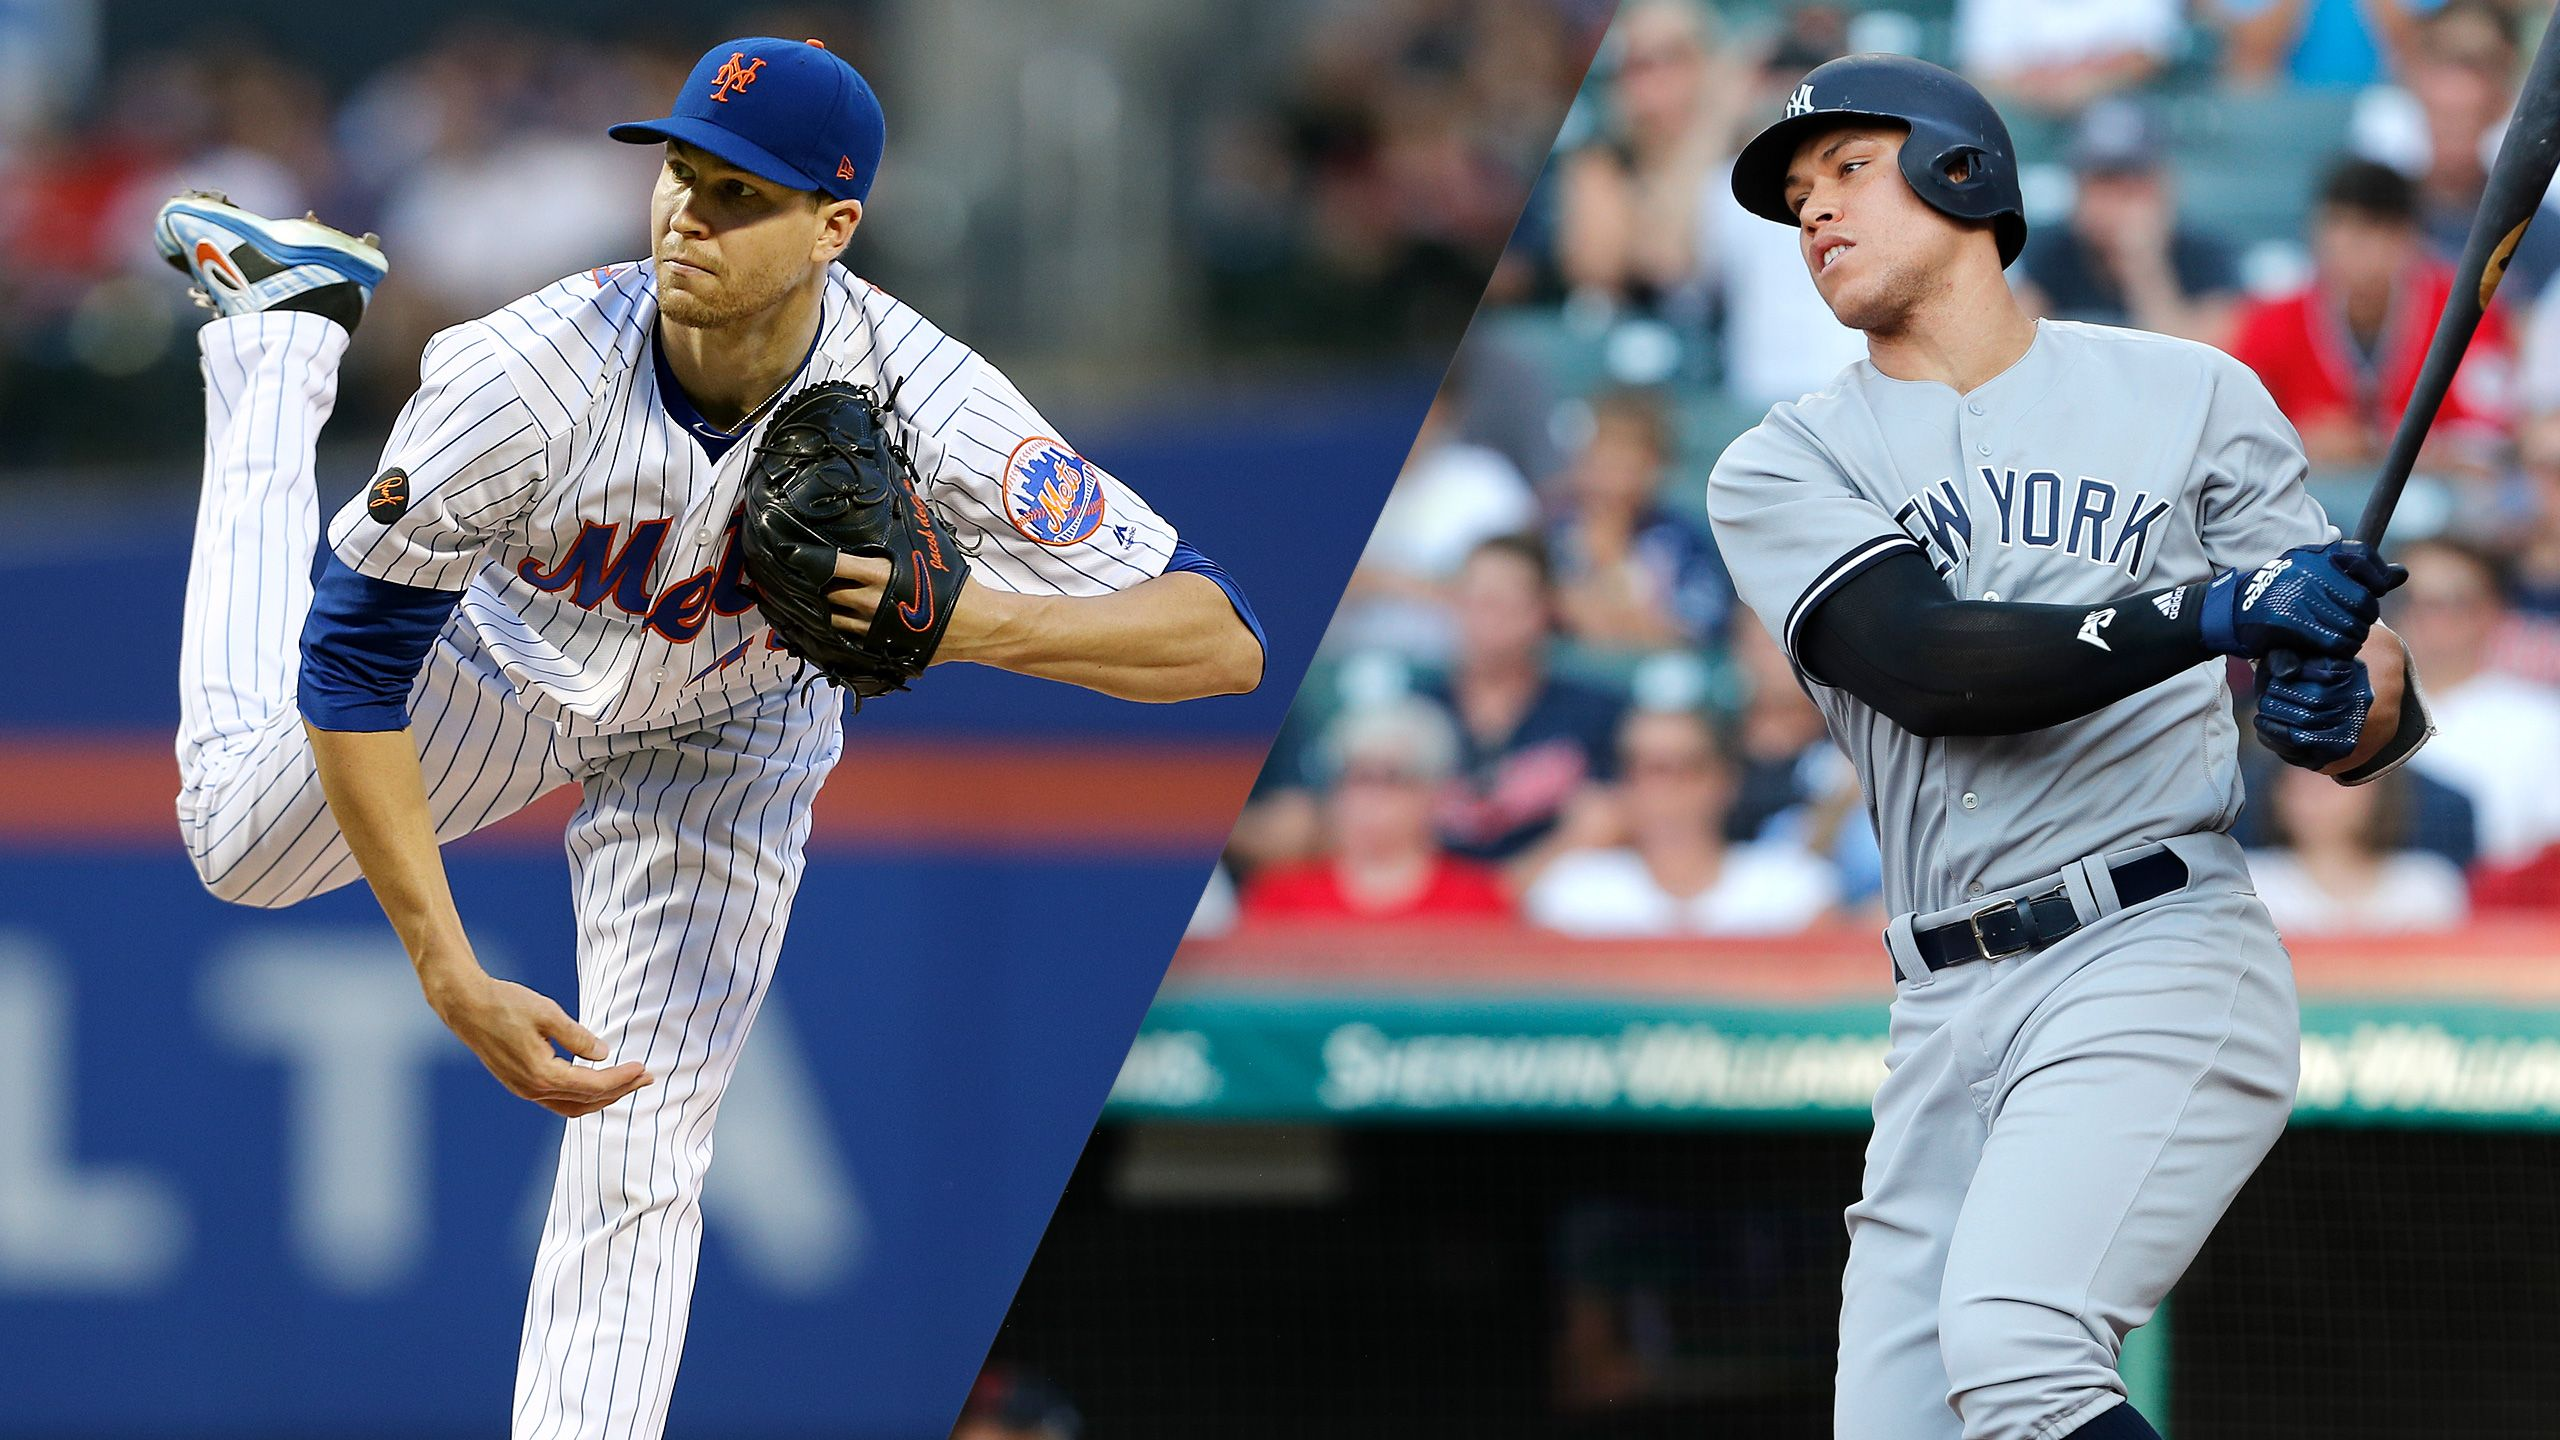 New York Mets vs. New York Yankees